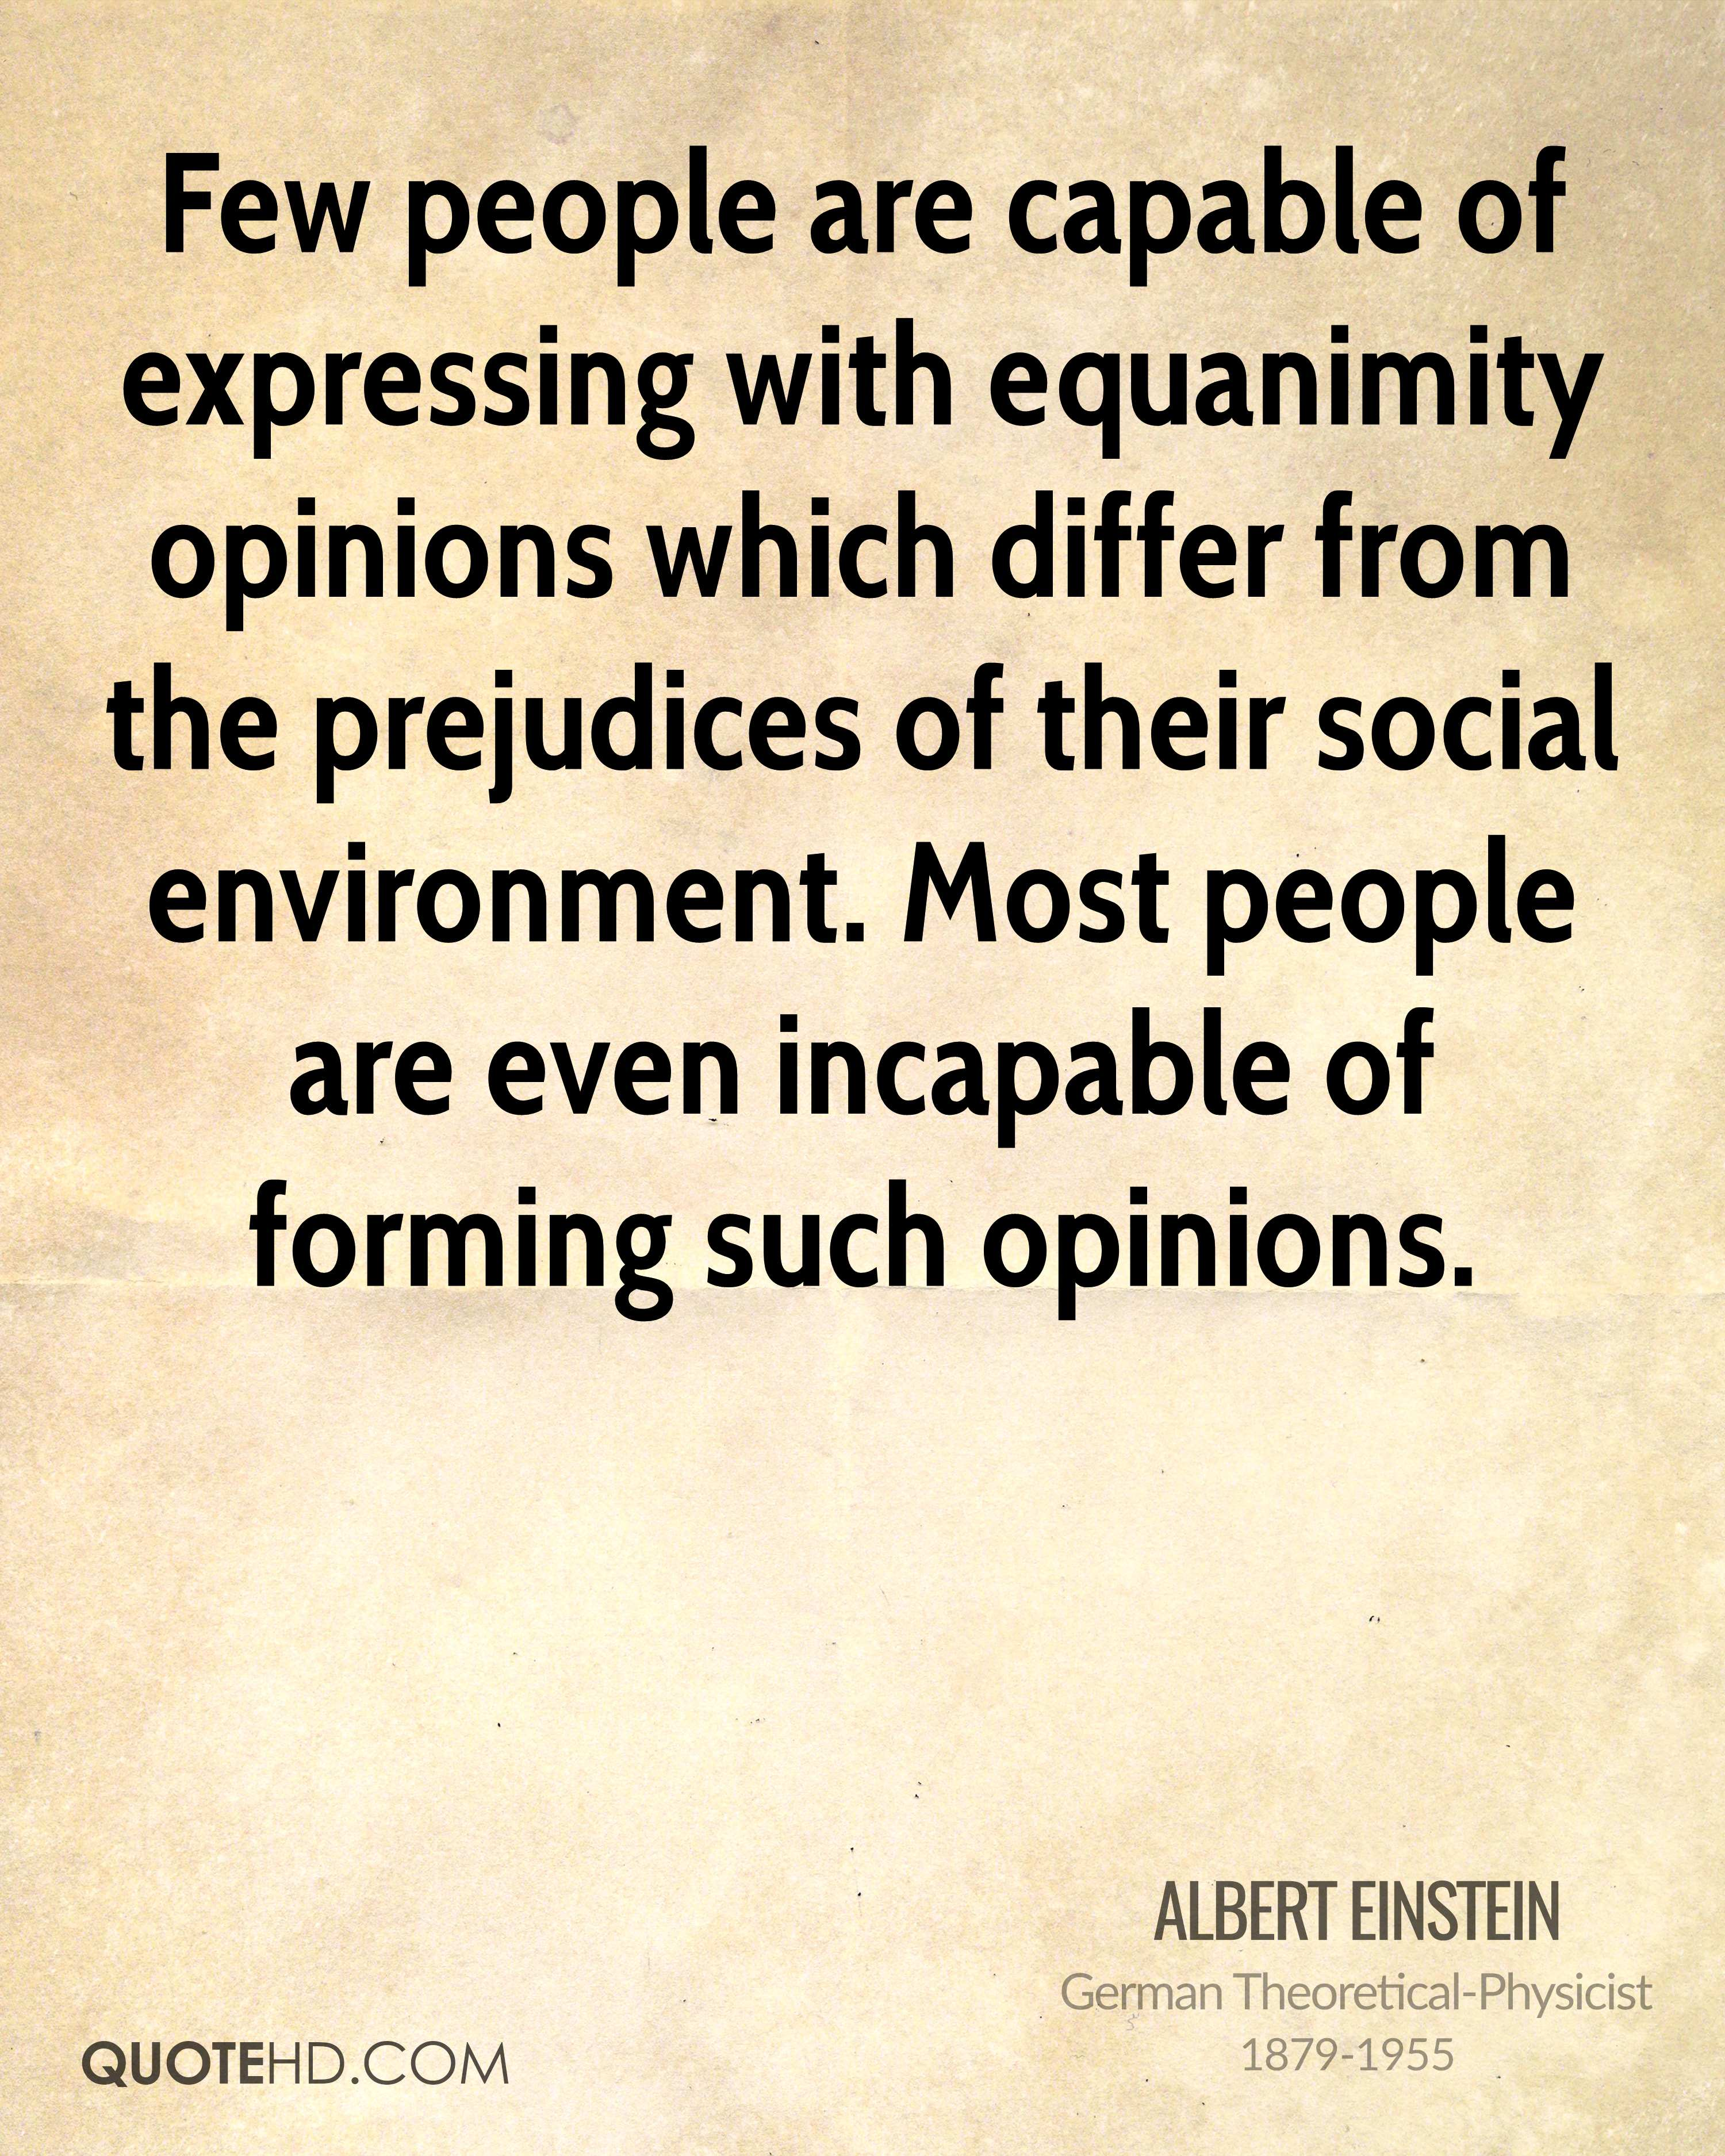 Few people are capable of expressing with equanimity opinions which differ from the prejudices of their social environment. Most people are even incapable of forming such opinions.